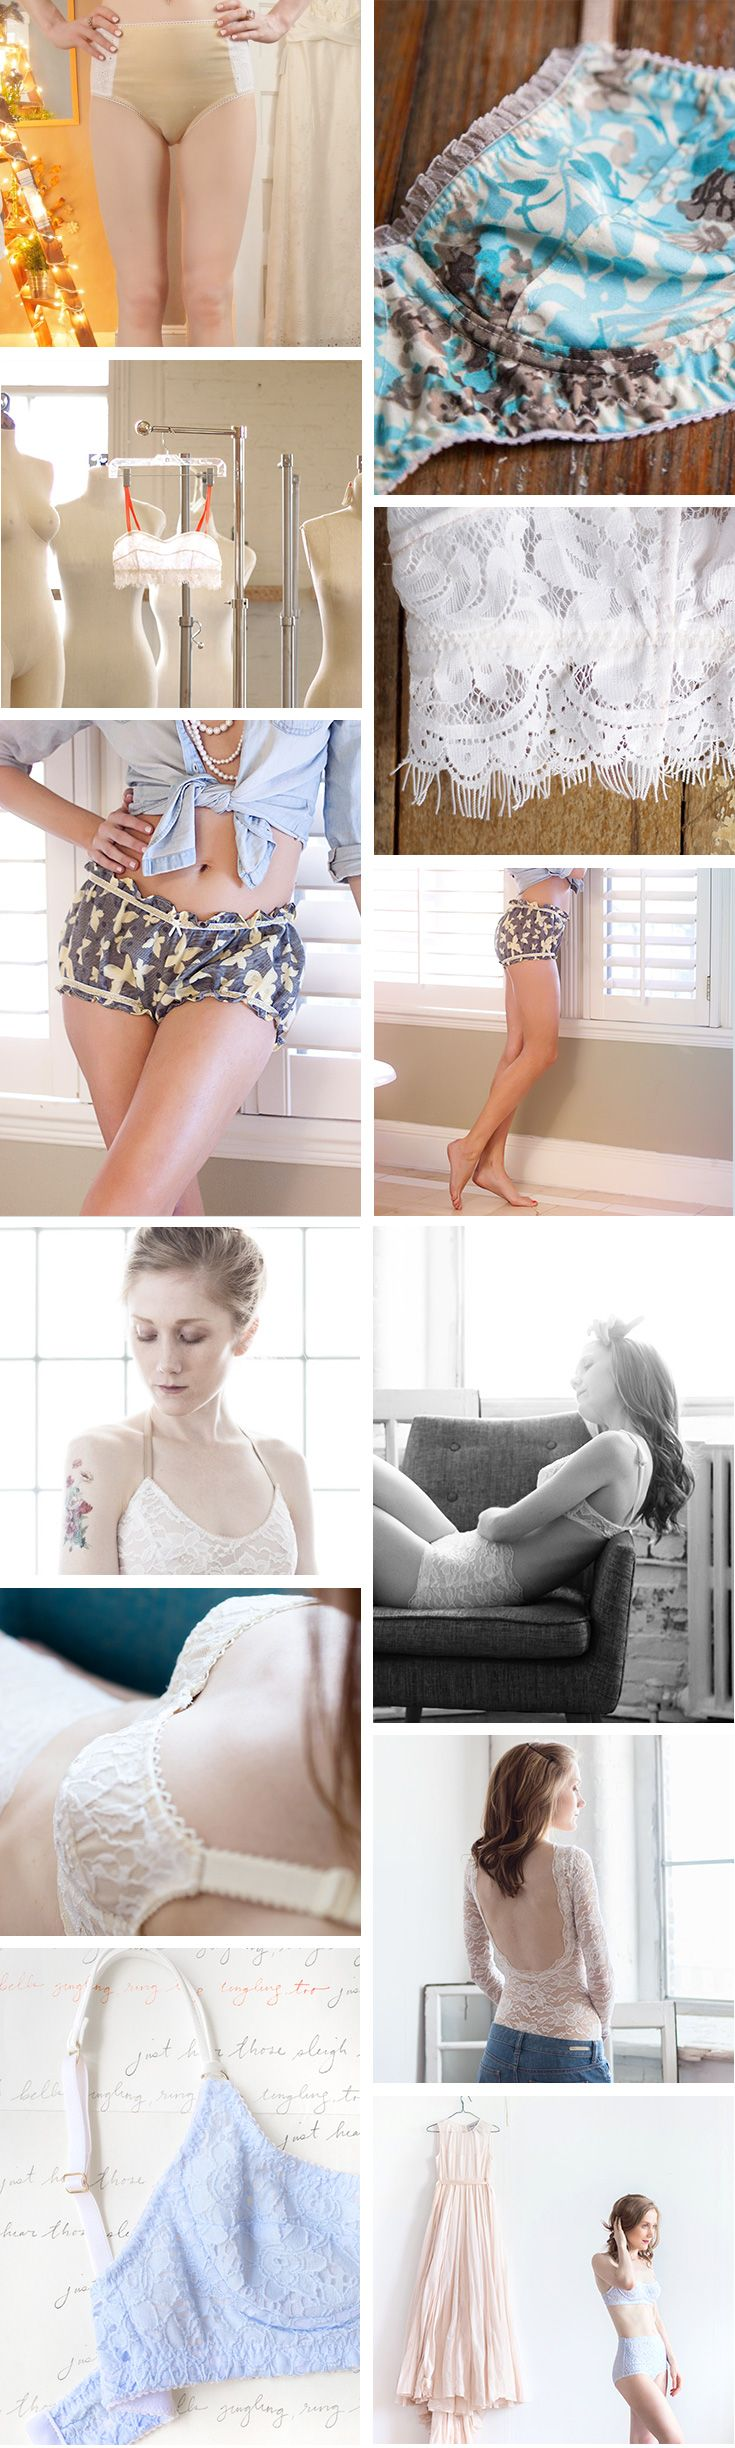 What I've Learned From Sewing Lingerie - Madalynne - The Cool Patternmaking and Sewing Blog